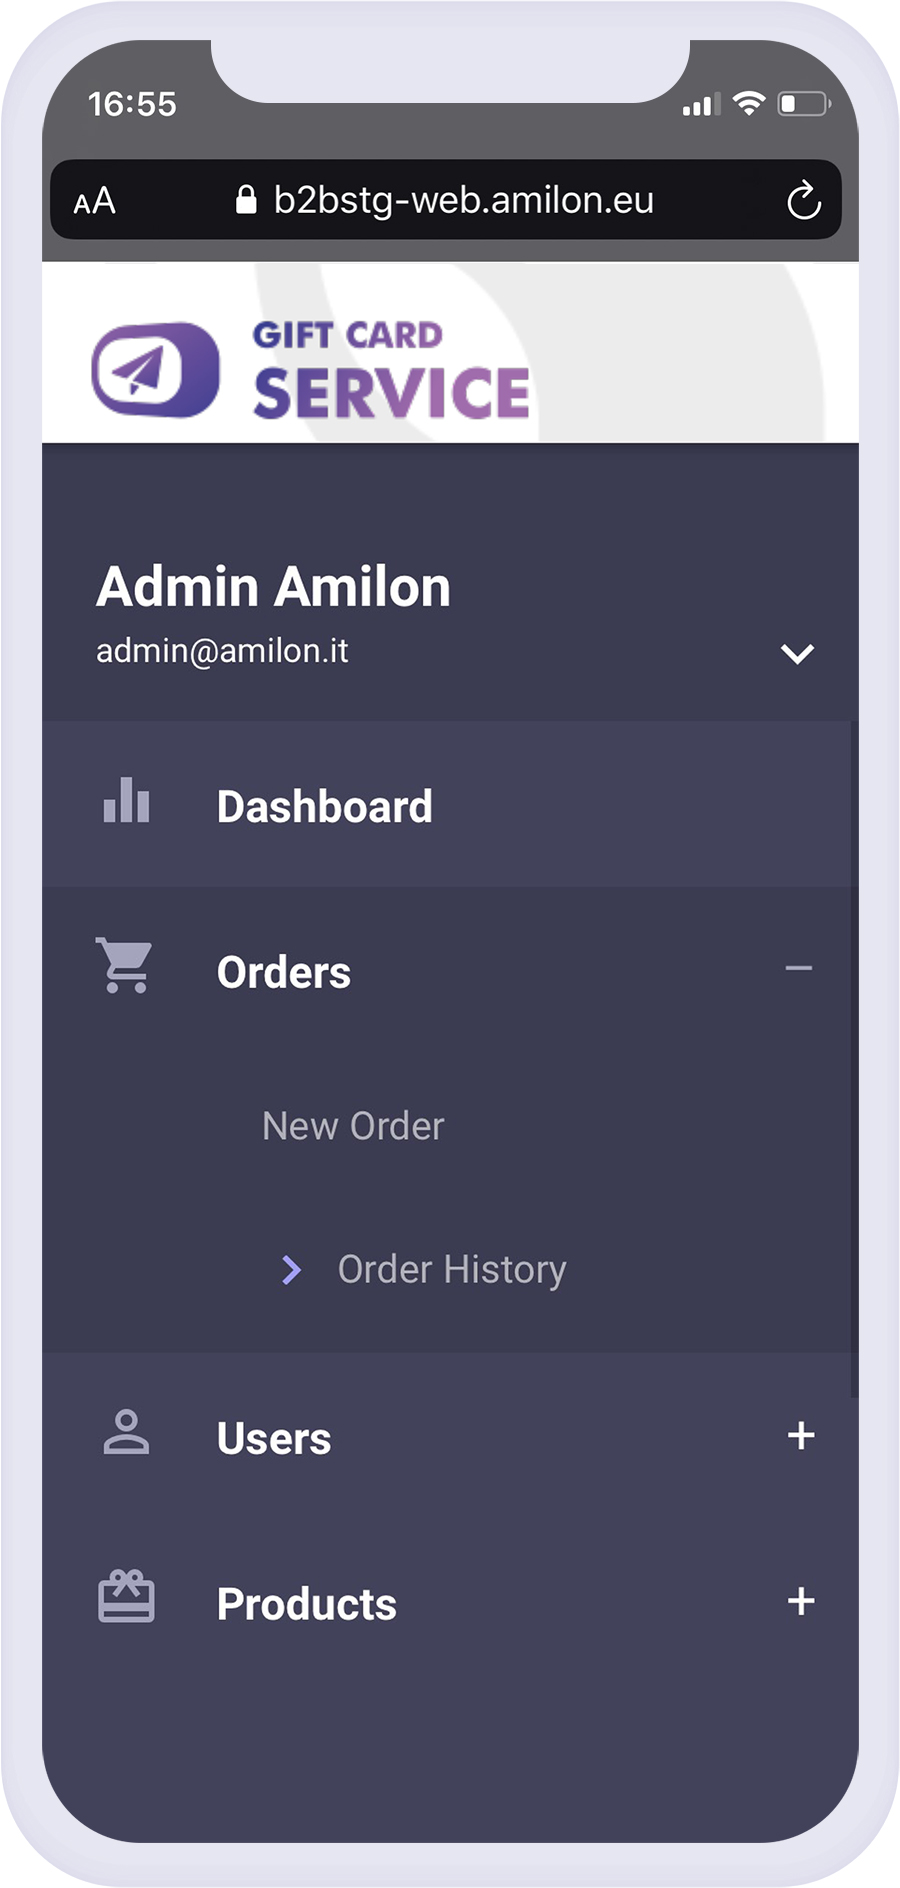 Amilon Gift Card Service: allowing merchants to directly sell their own gift cards